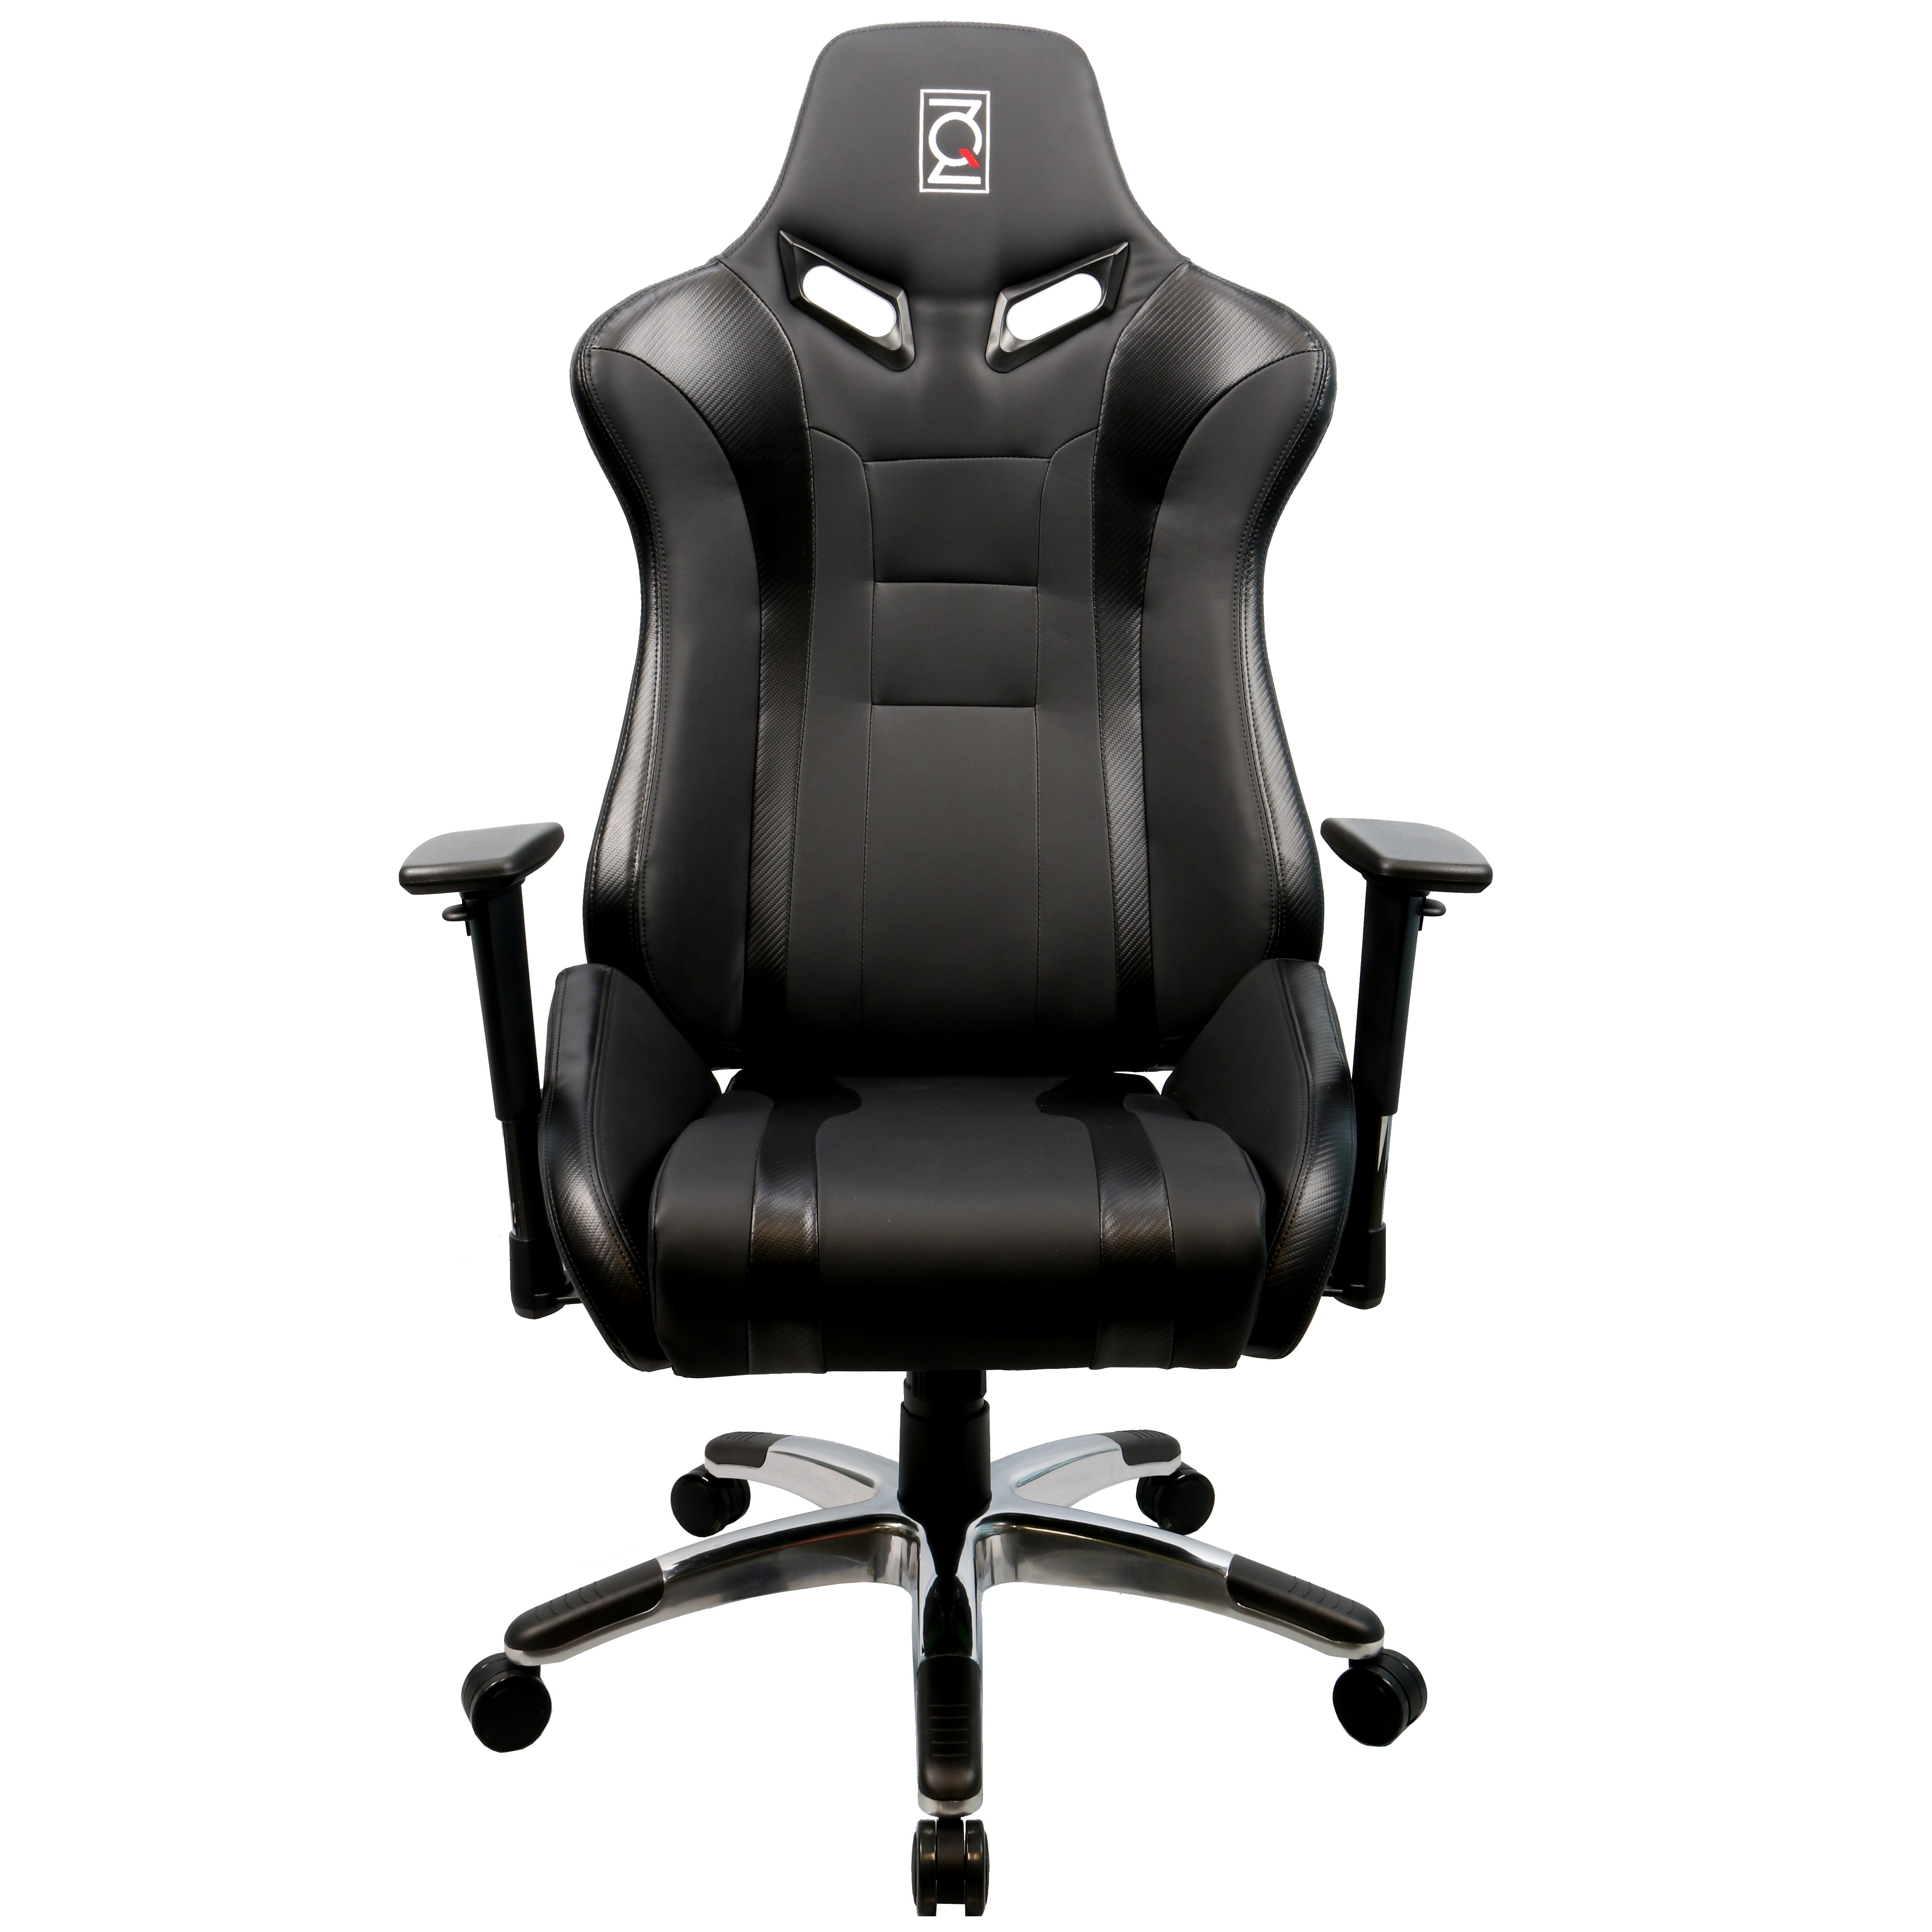 xl desk chair sit me up for babies zqracing alien series gaming office black